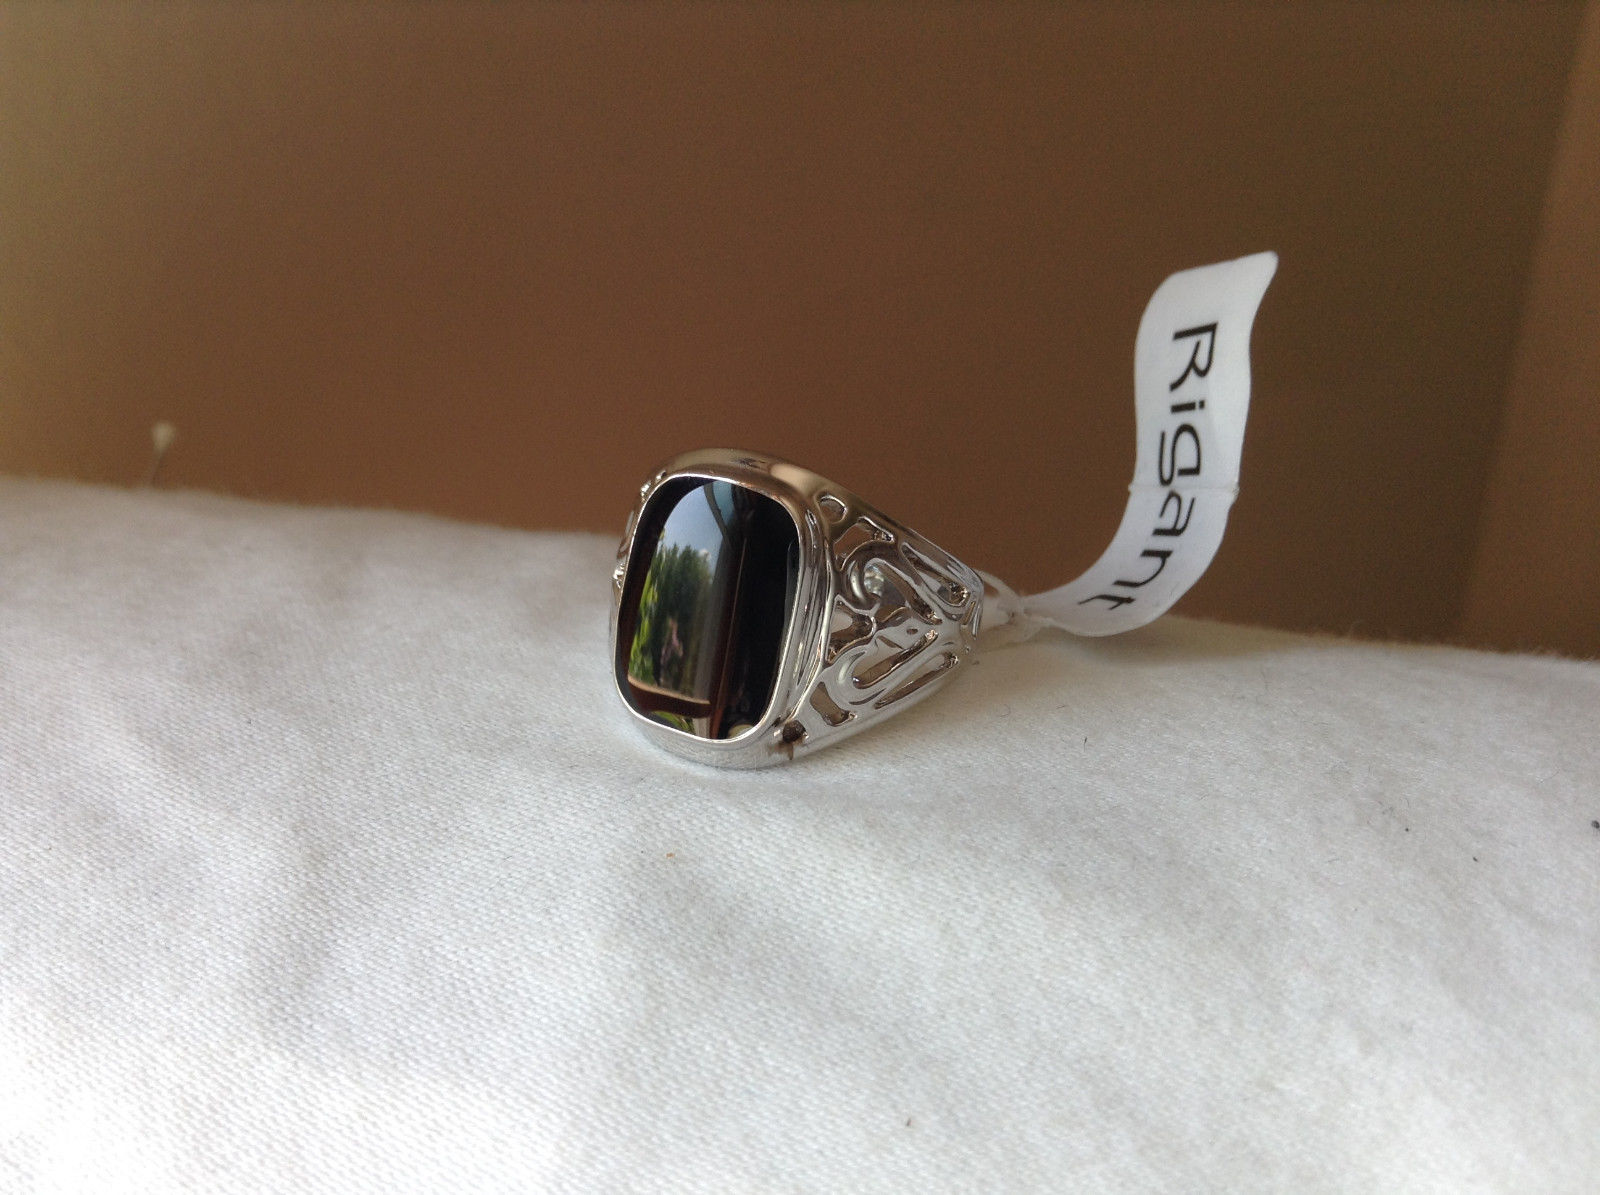 Heart Swirl Design Black Rectangular Stainless Steel Ring Size 9